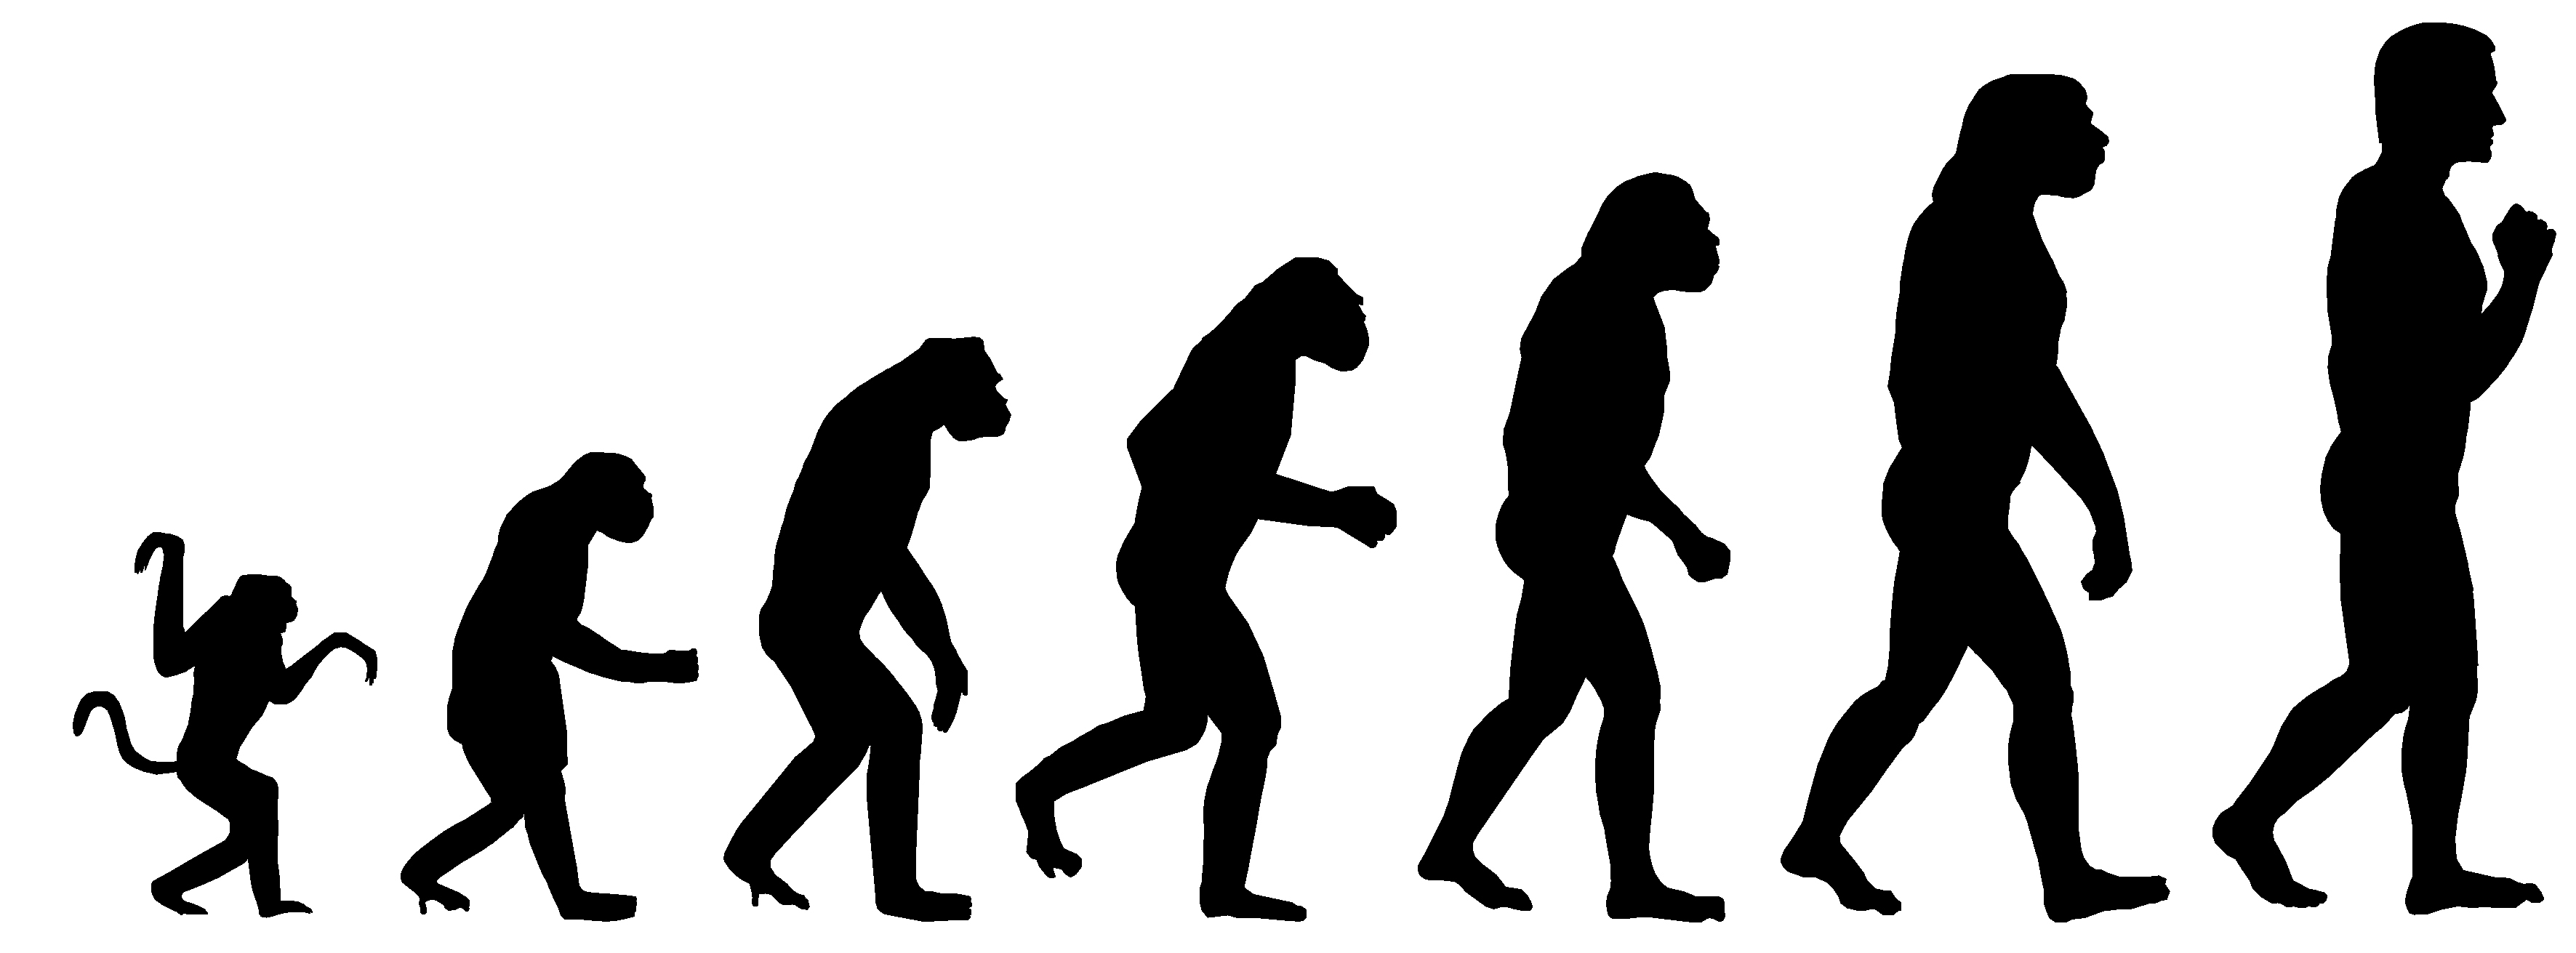 the importance of fire for the evolution of humankind The importance of teaching human evolution teaching human evolution is too important to avoid for fear of the controversy surrounding it.